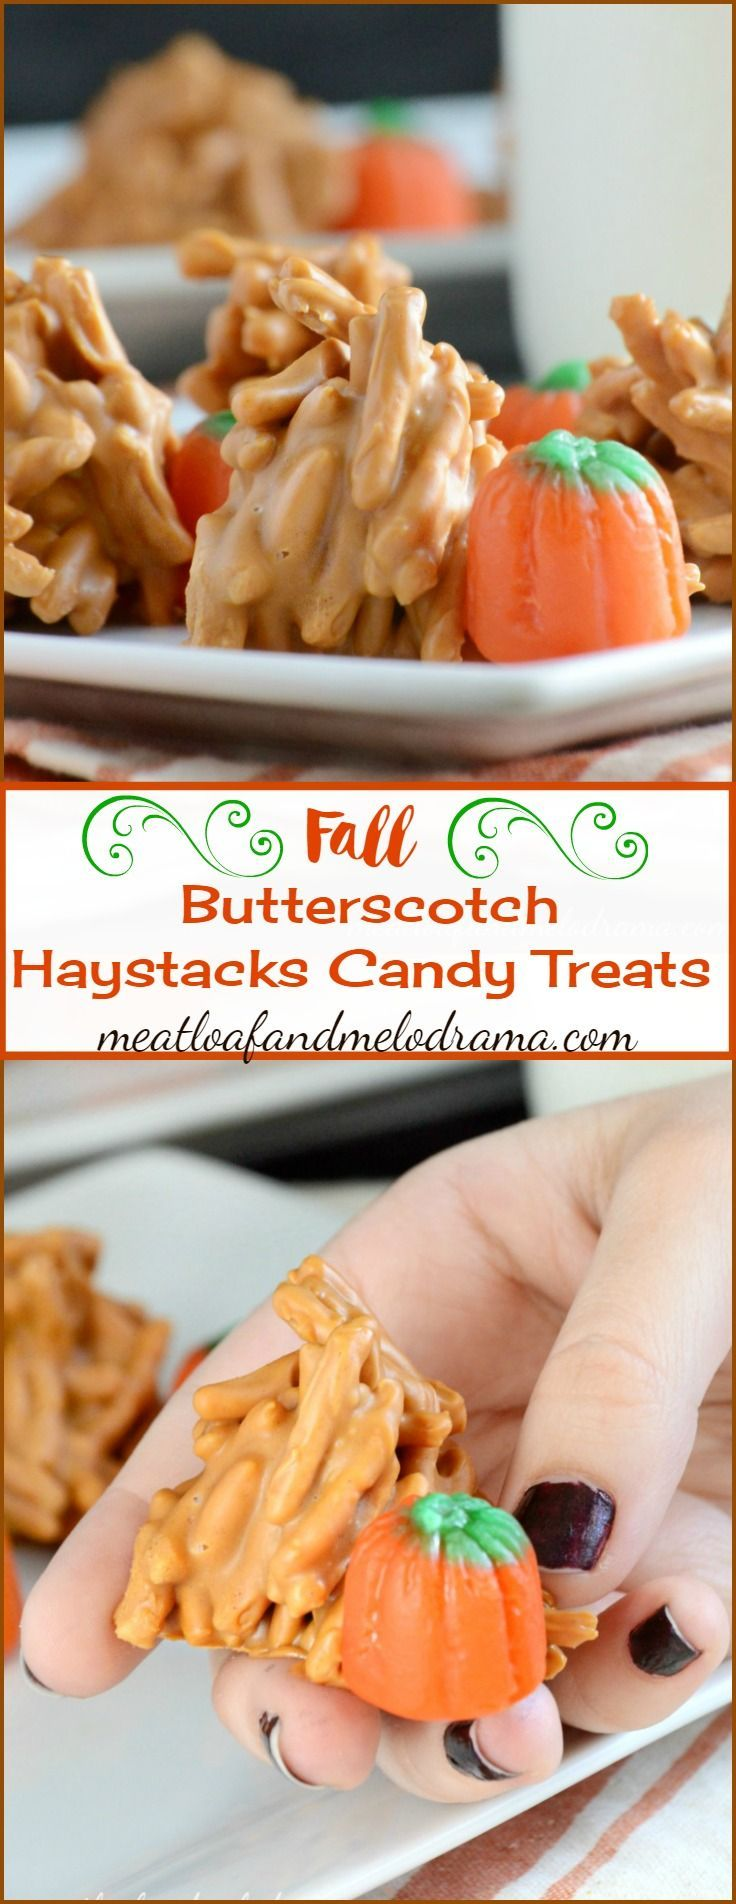 Butterscotch Haystacks Candy Treats - Meatloaf and Melodrama